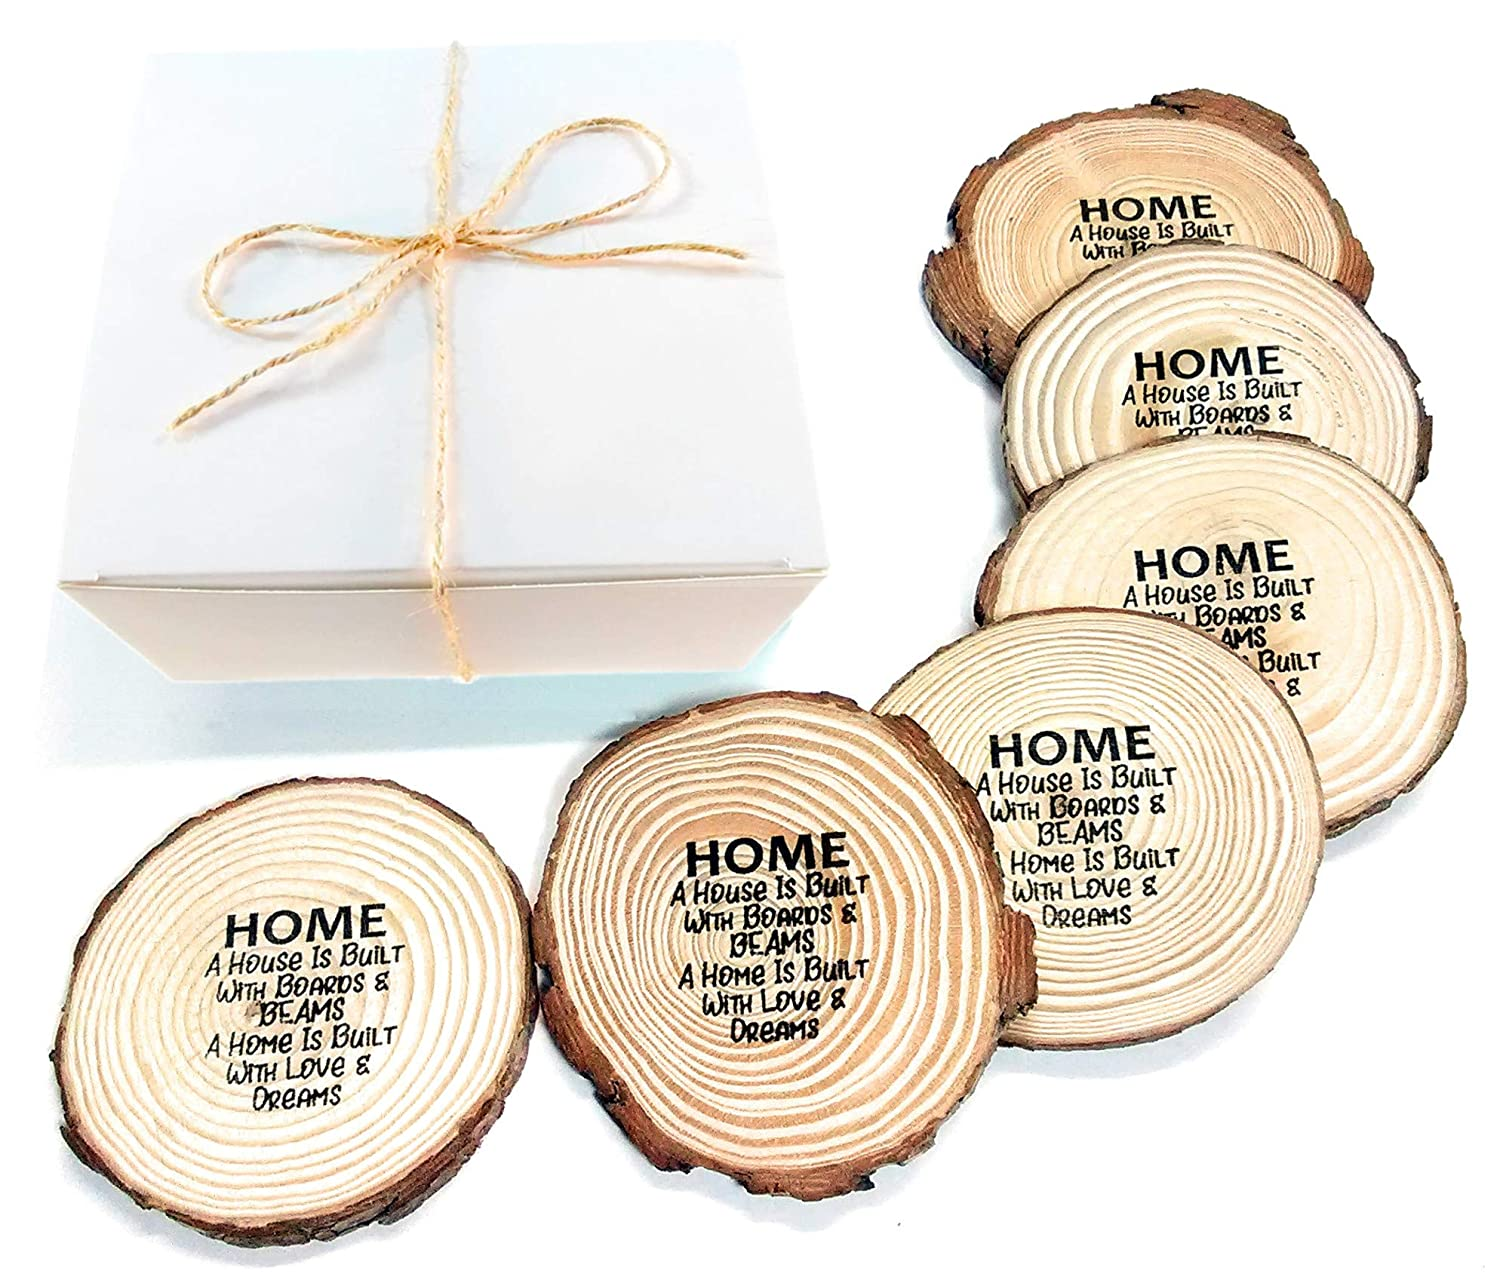 Best Housewarming Gift Ideas for a New Home? Coasters! Premium, Personalized, Gift Ready, All Natural Absorbent Wood Coasters for Drinks